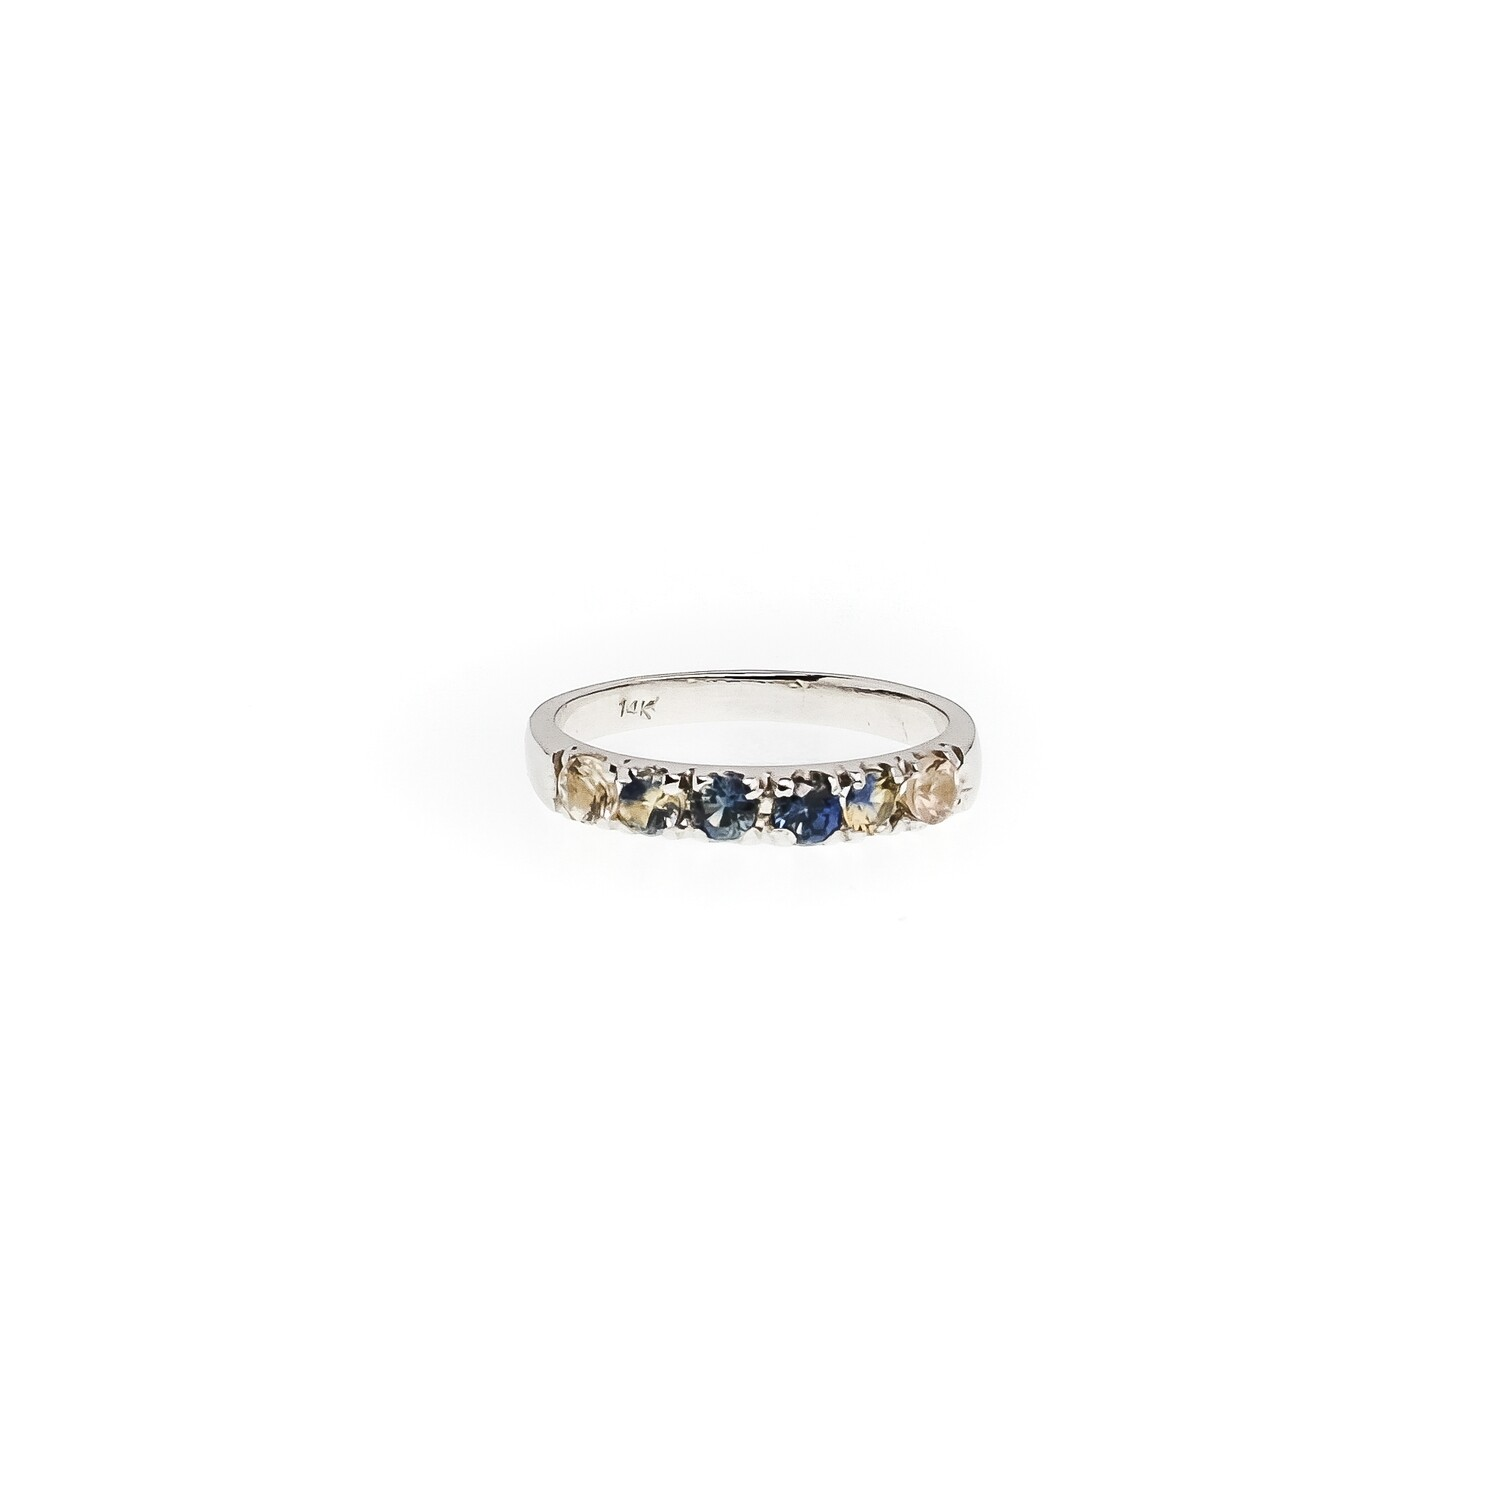 The Elemental Eternity Ring (Starry Night Inspired) - Sapphire - 5.5⌀ (14KT)